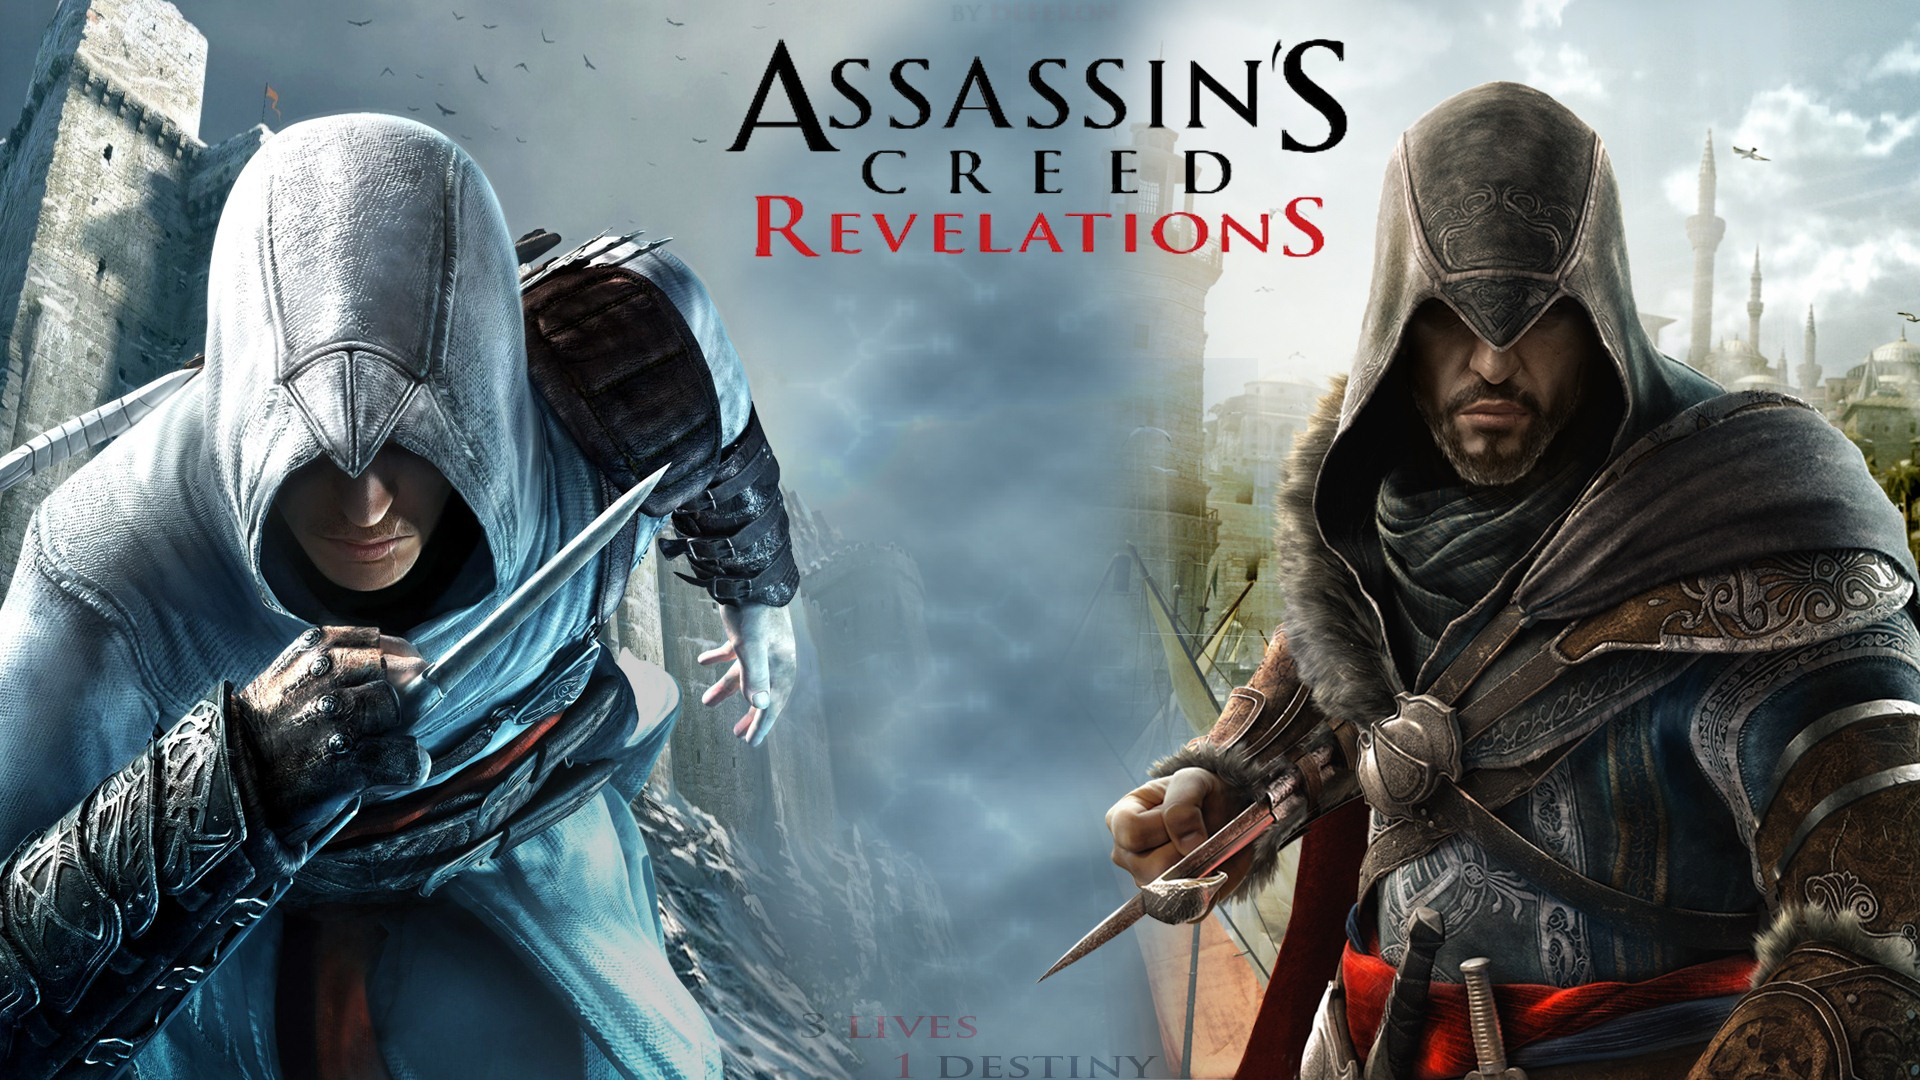 Assassins Creed Revelations Hd Wallpapers 20 1920x1080